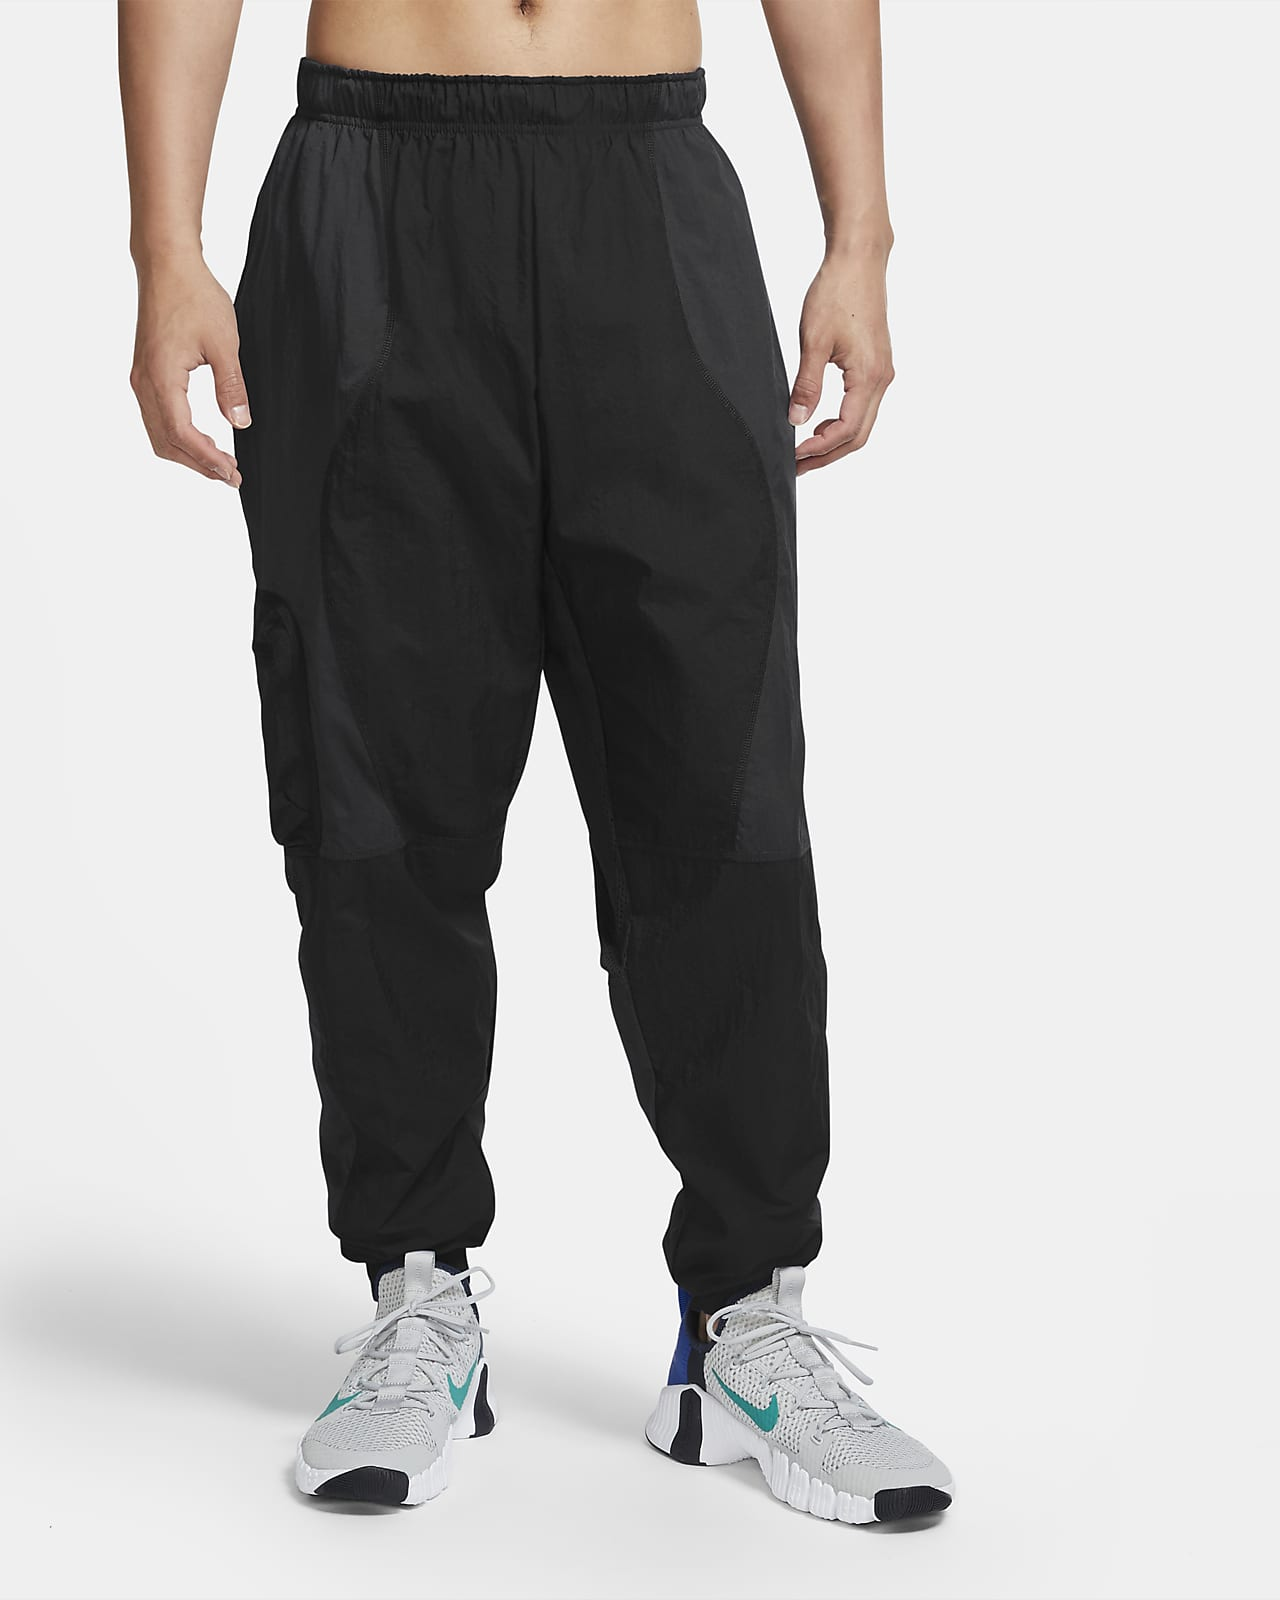 Nike Men's Training Trousers